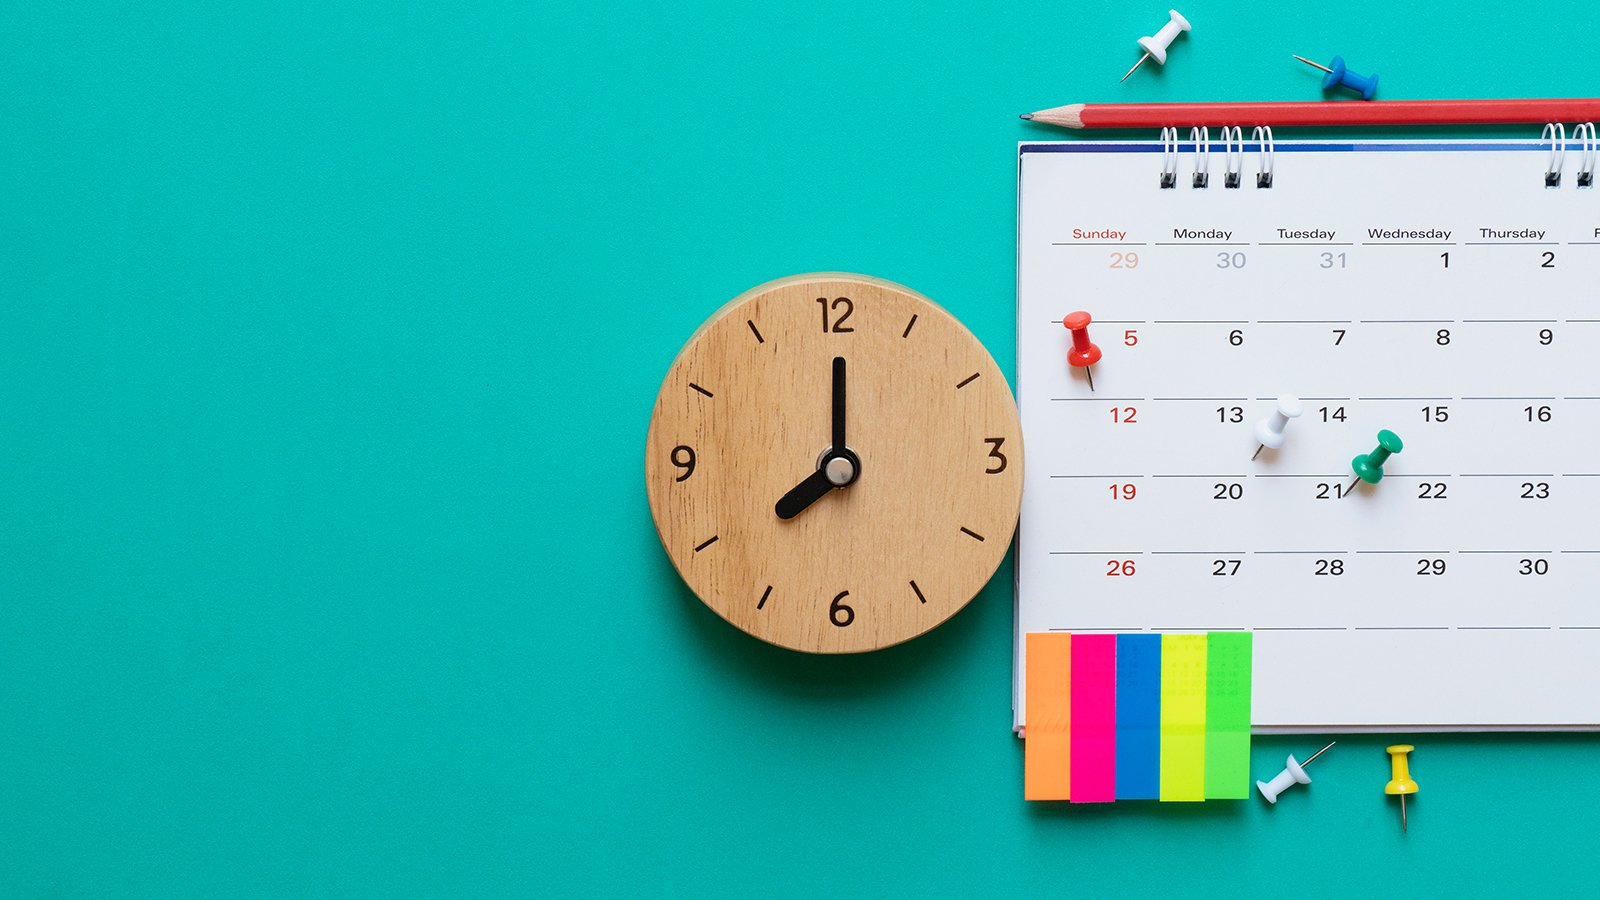 5 Scheduling Tips for Busy People